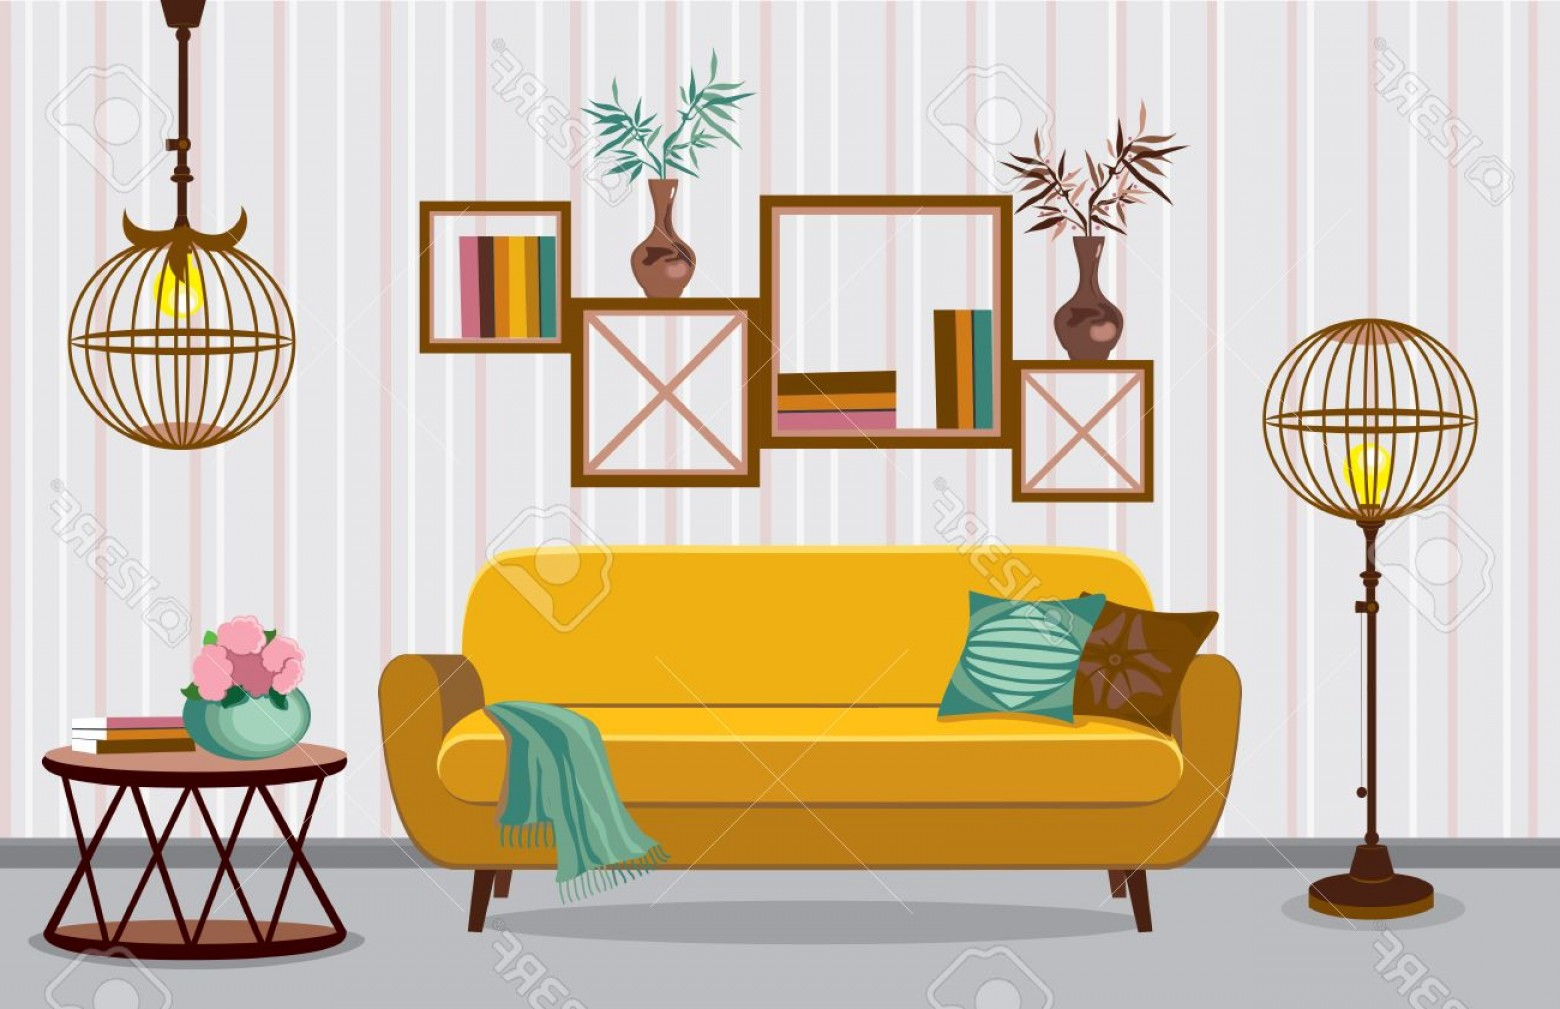 Vector Background For Living Room: Photostock Vector Interior Living Room Vector Illustration In Flat Design With Shadows House Furniture Cartoon Backgro